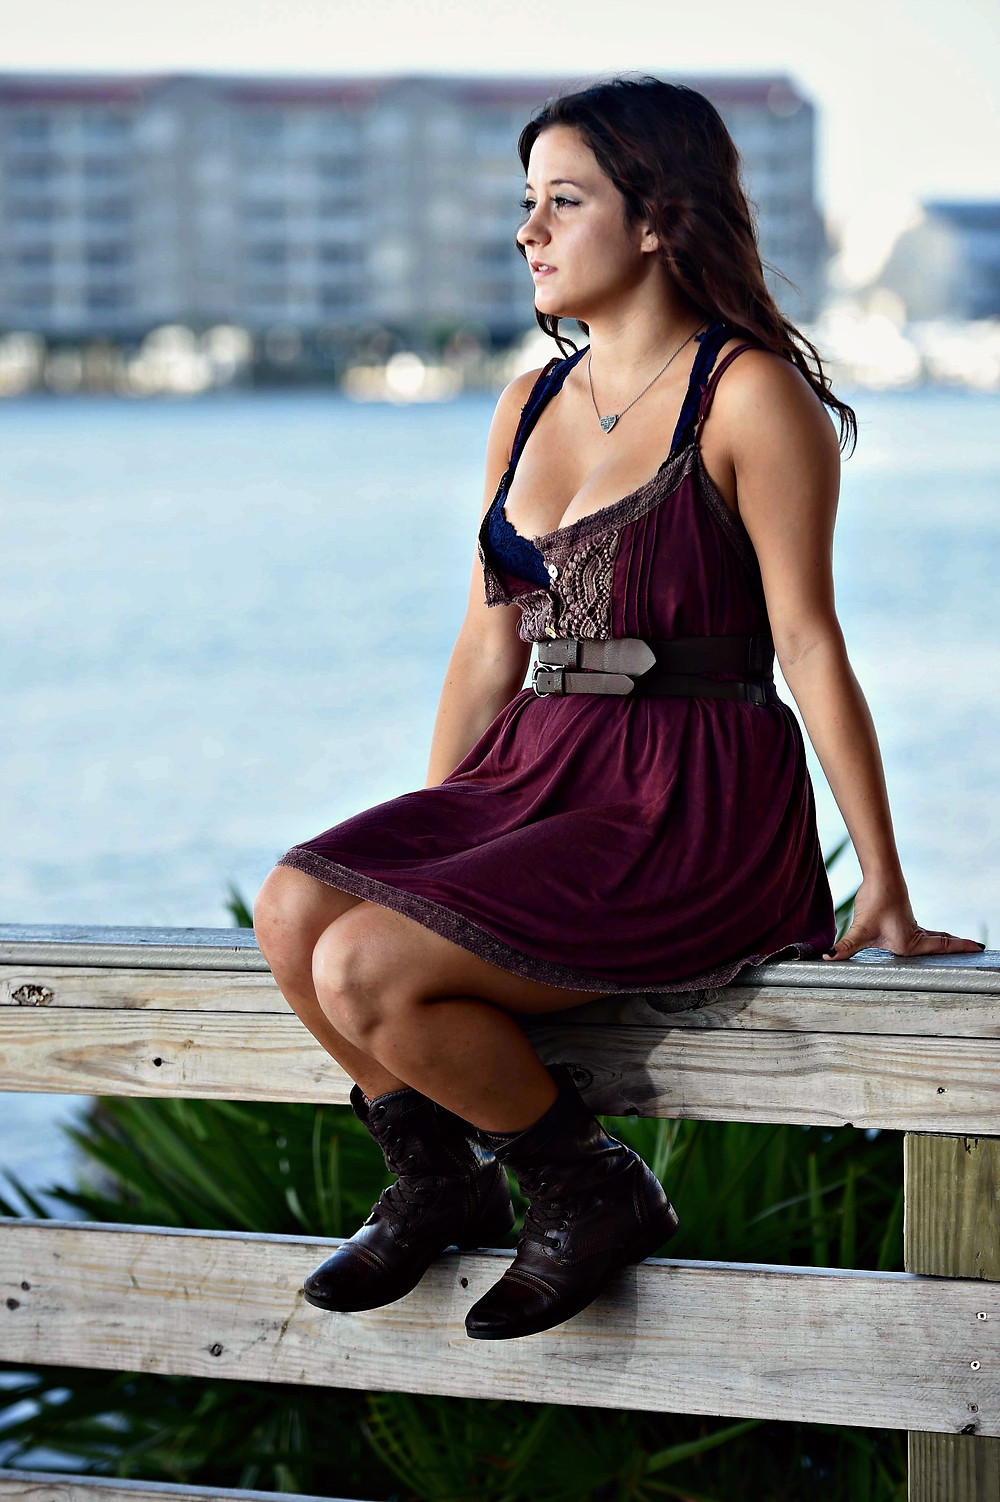 A style blogger wears a fall fashion outfit featuring a T-shirt dress and combat boots.